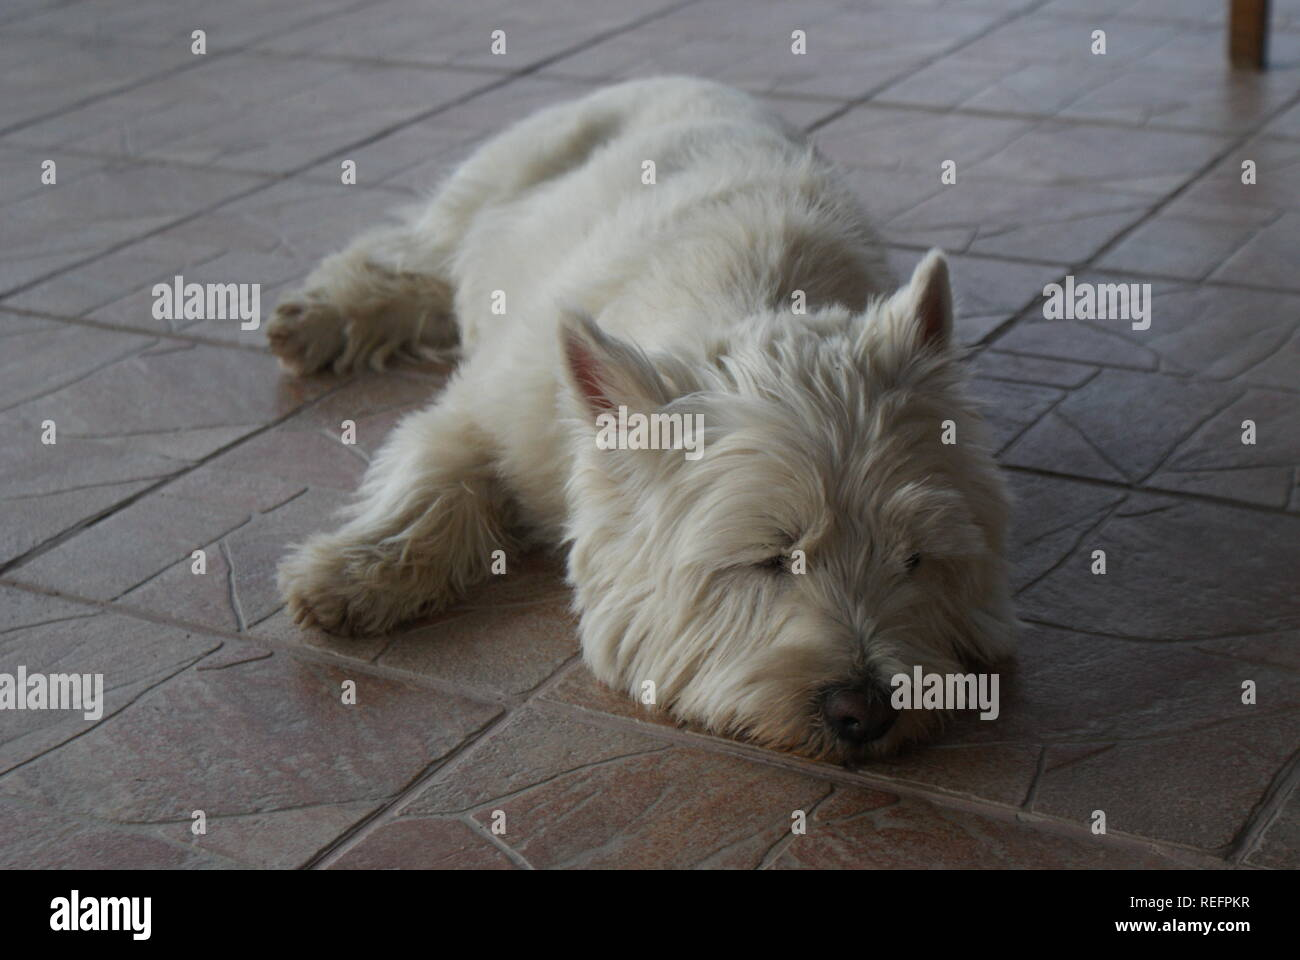 West highland terrier sleeping on tiles - Stock Image